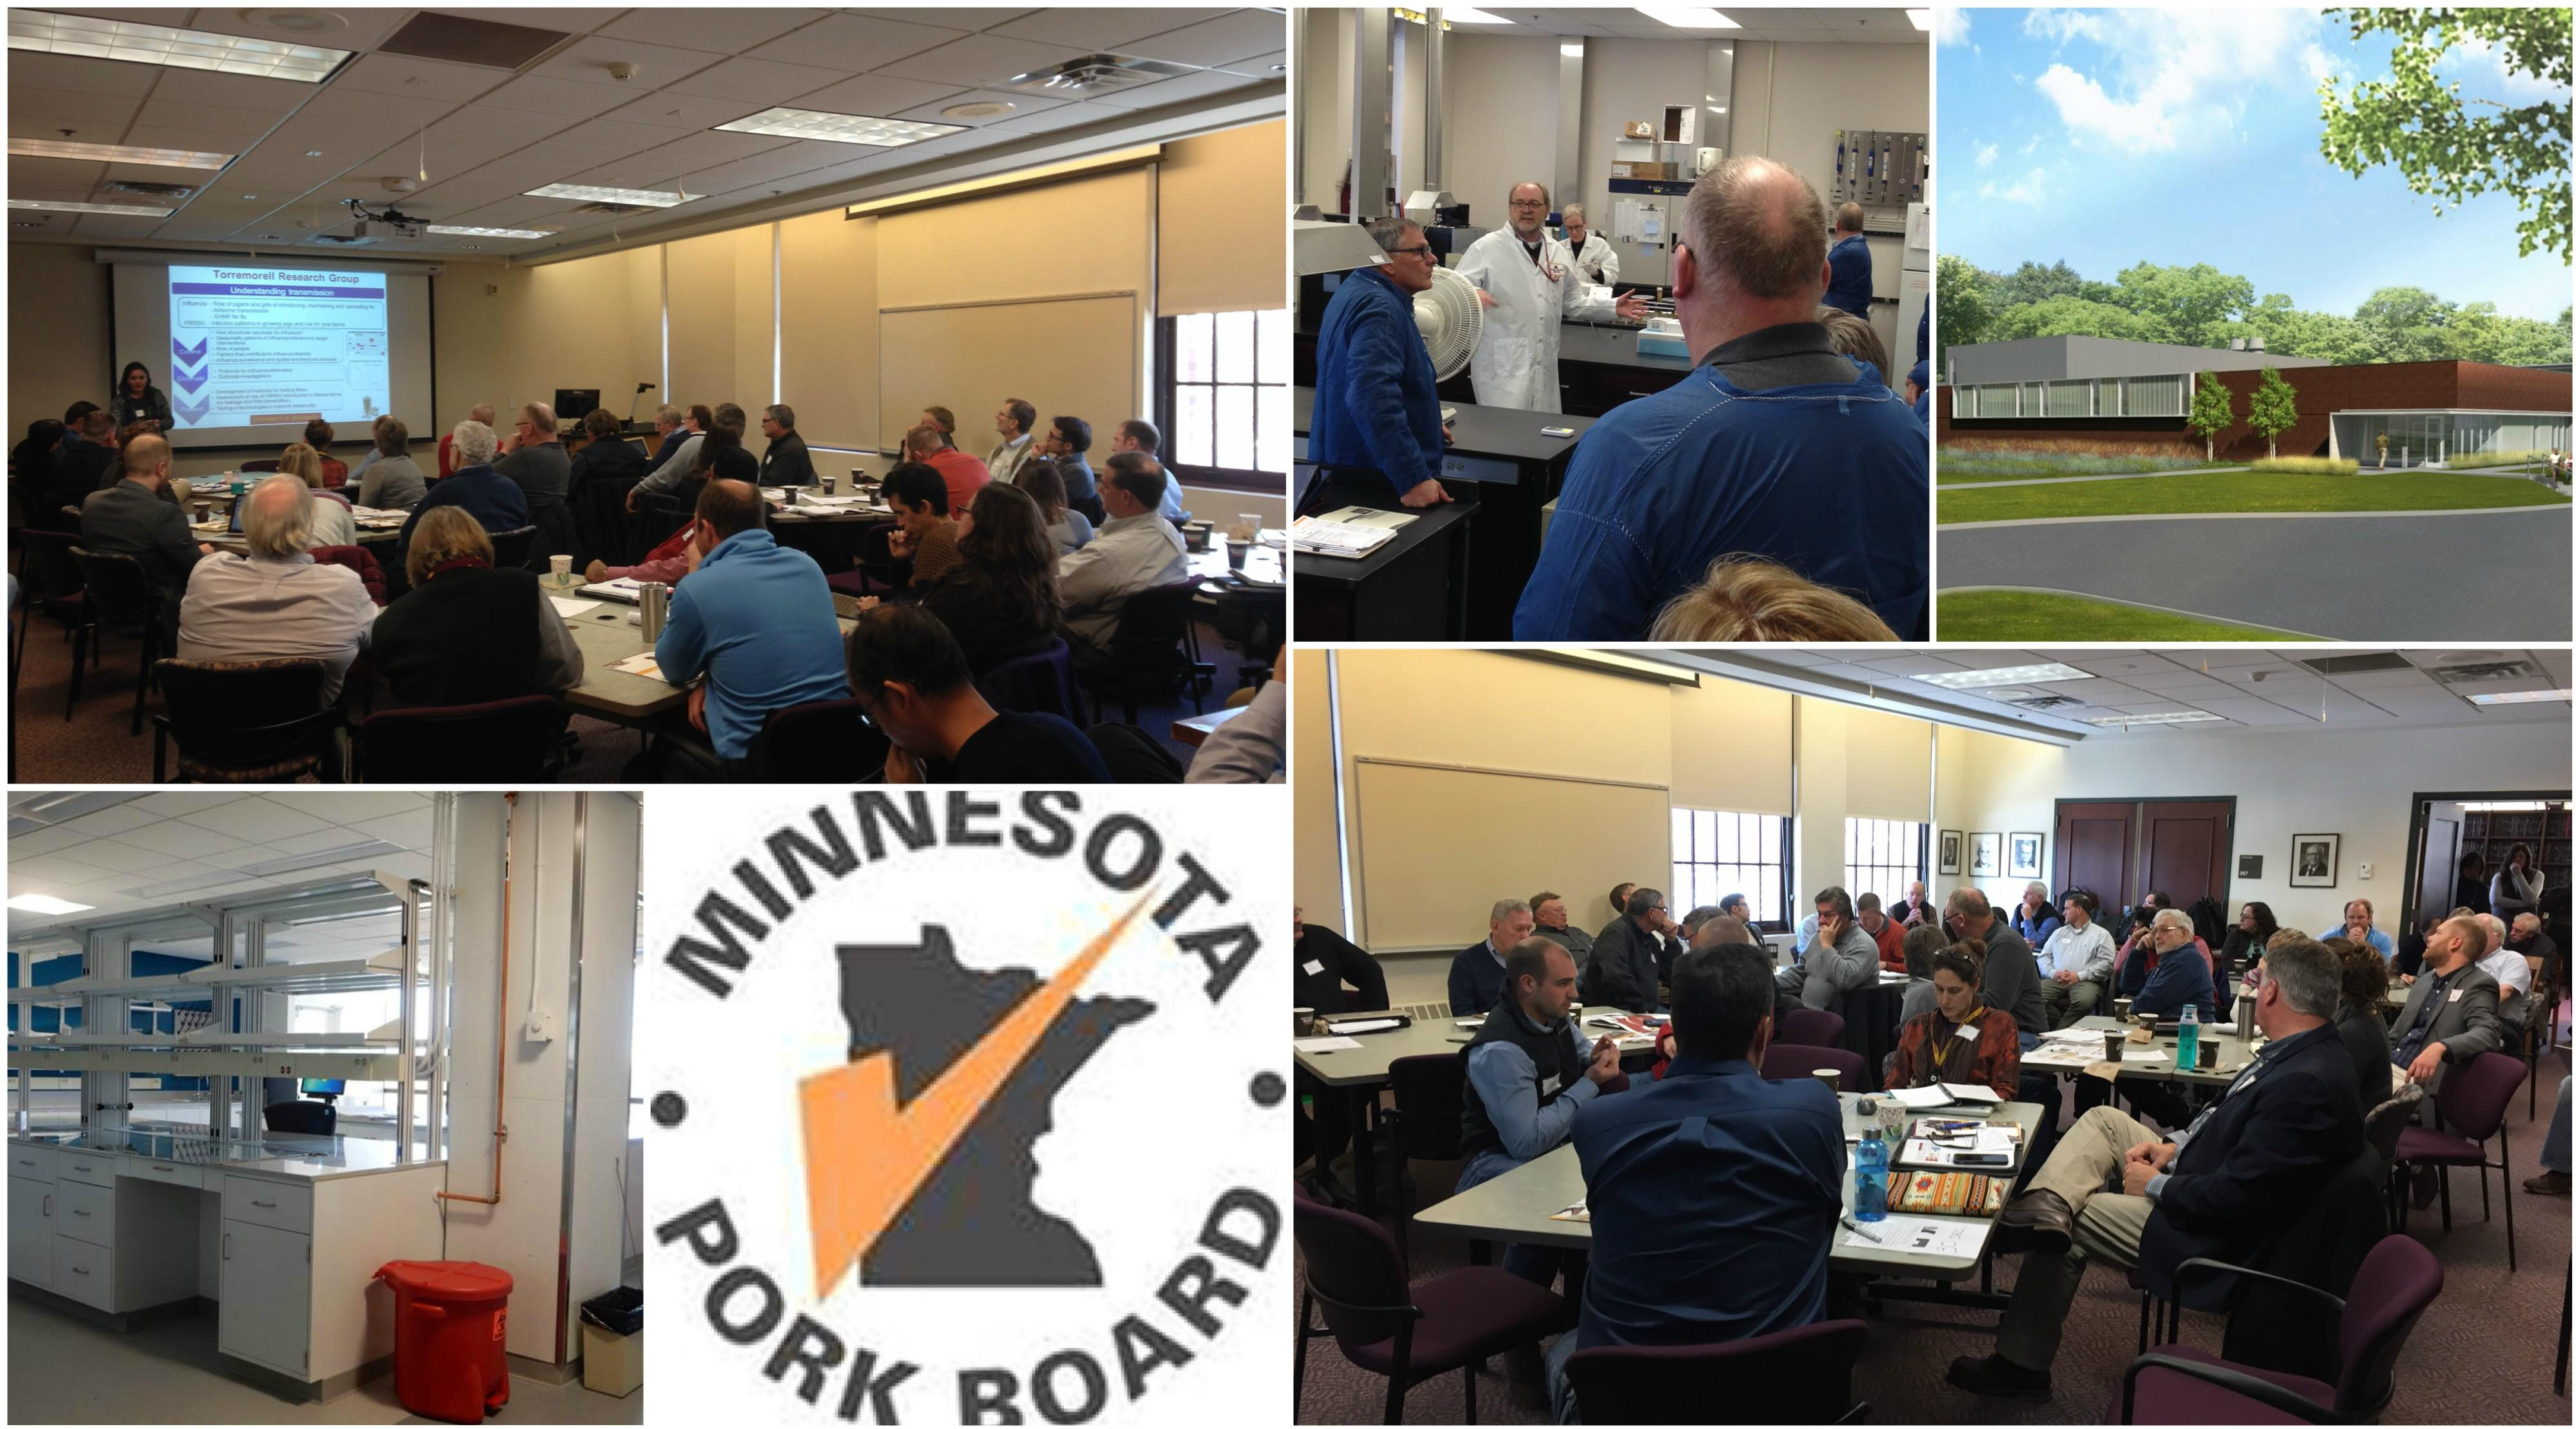 Collage of pcitures from the meeting between Minnesota pork board members and researchers at the U of MN